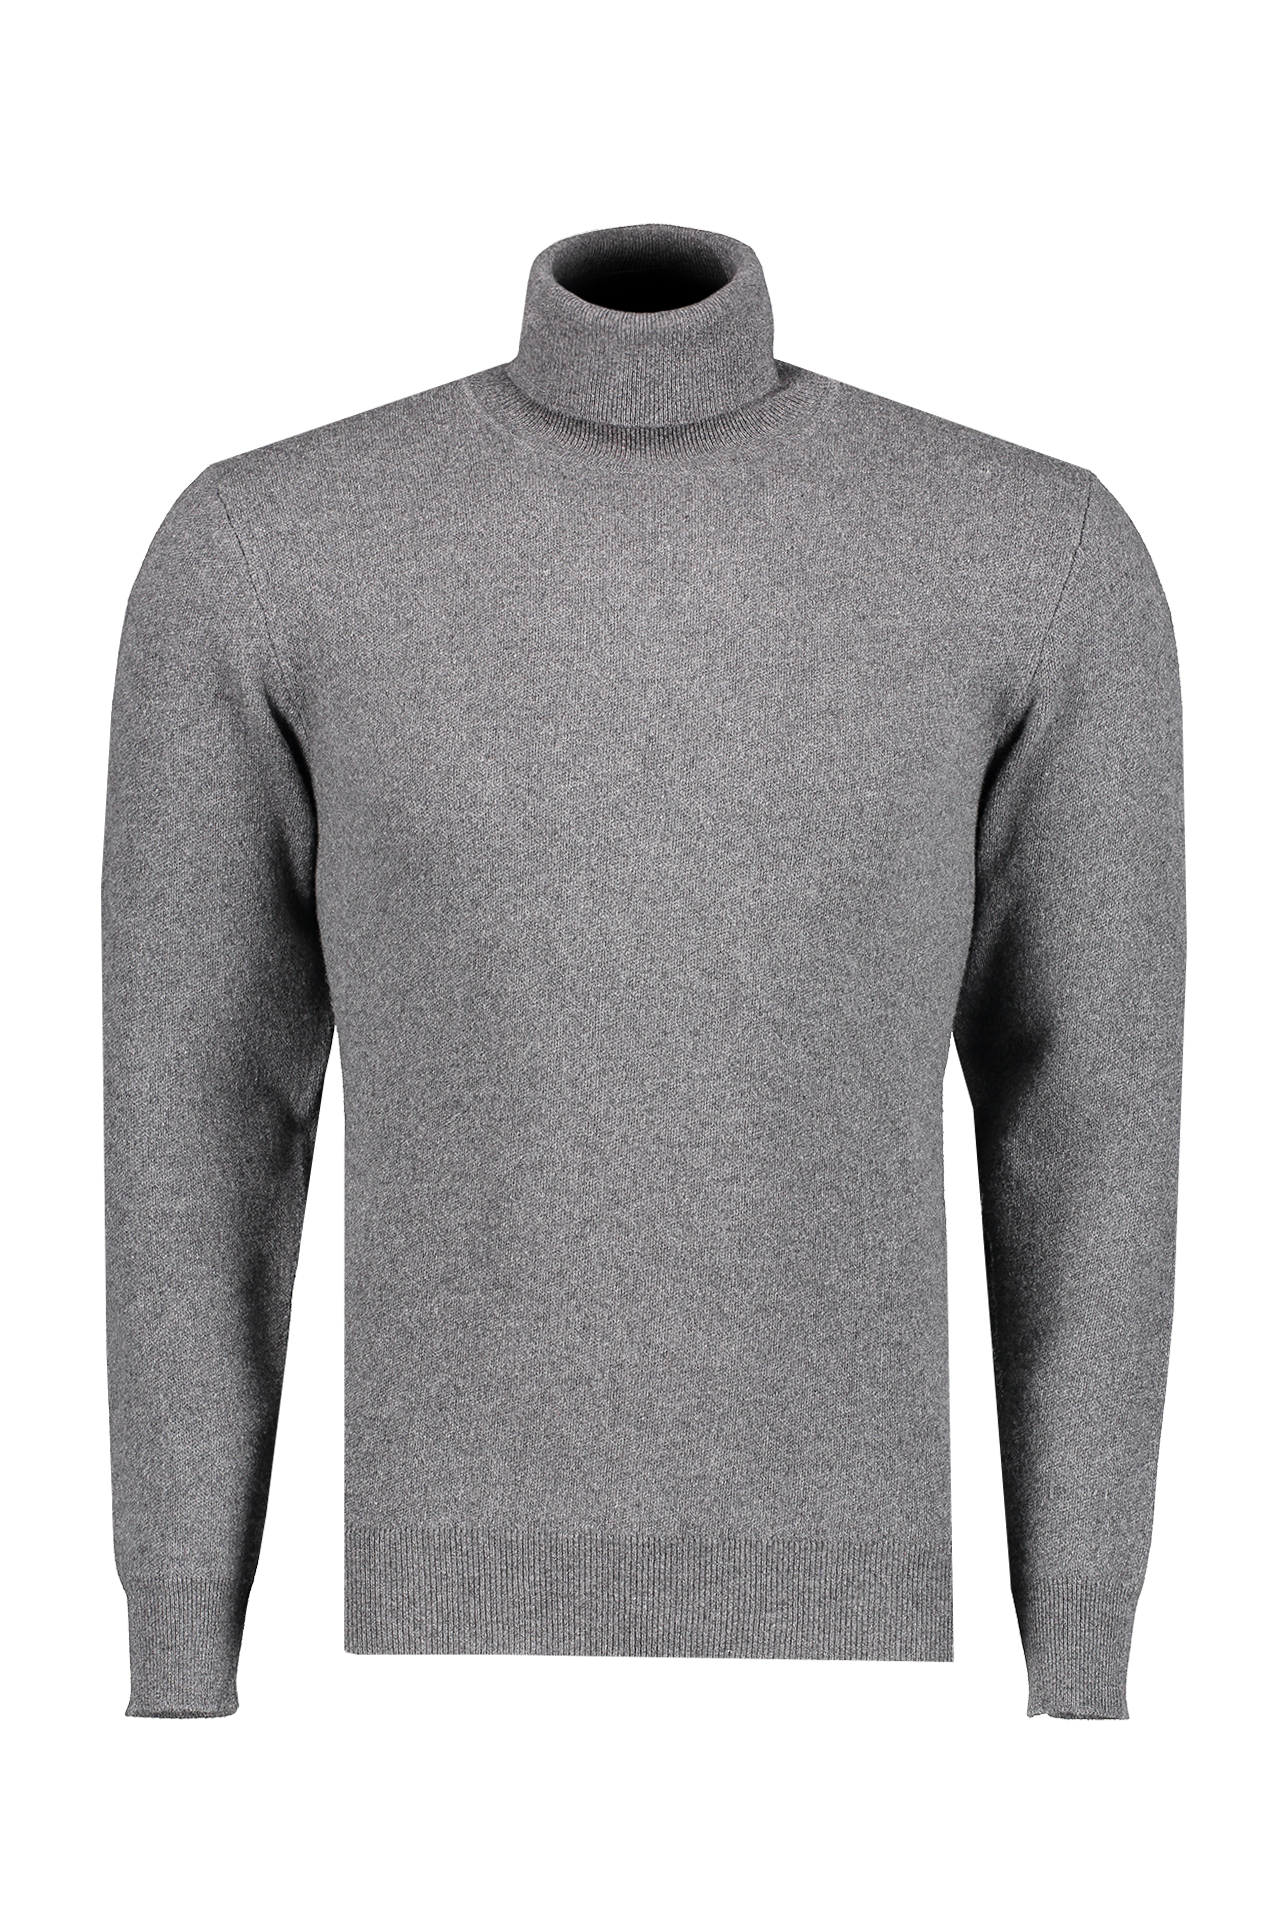 Front view image of Altea Men's Wool Cashmere Turtleneck Grigio Scuro